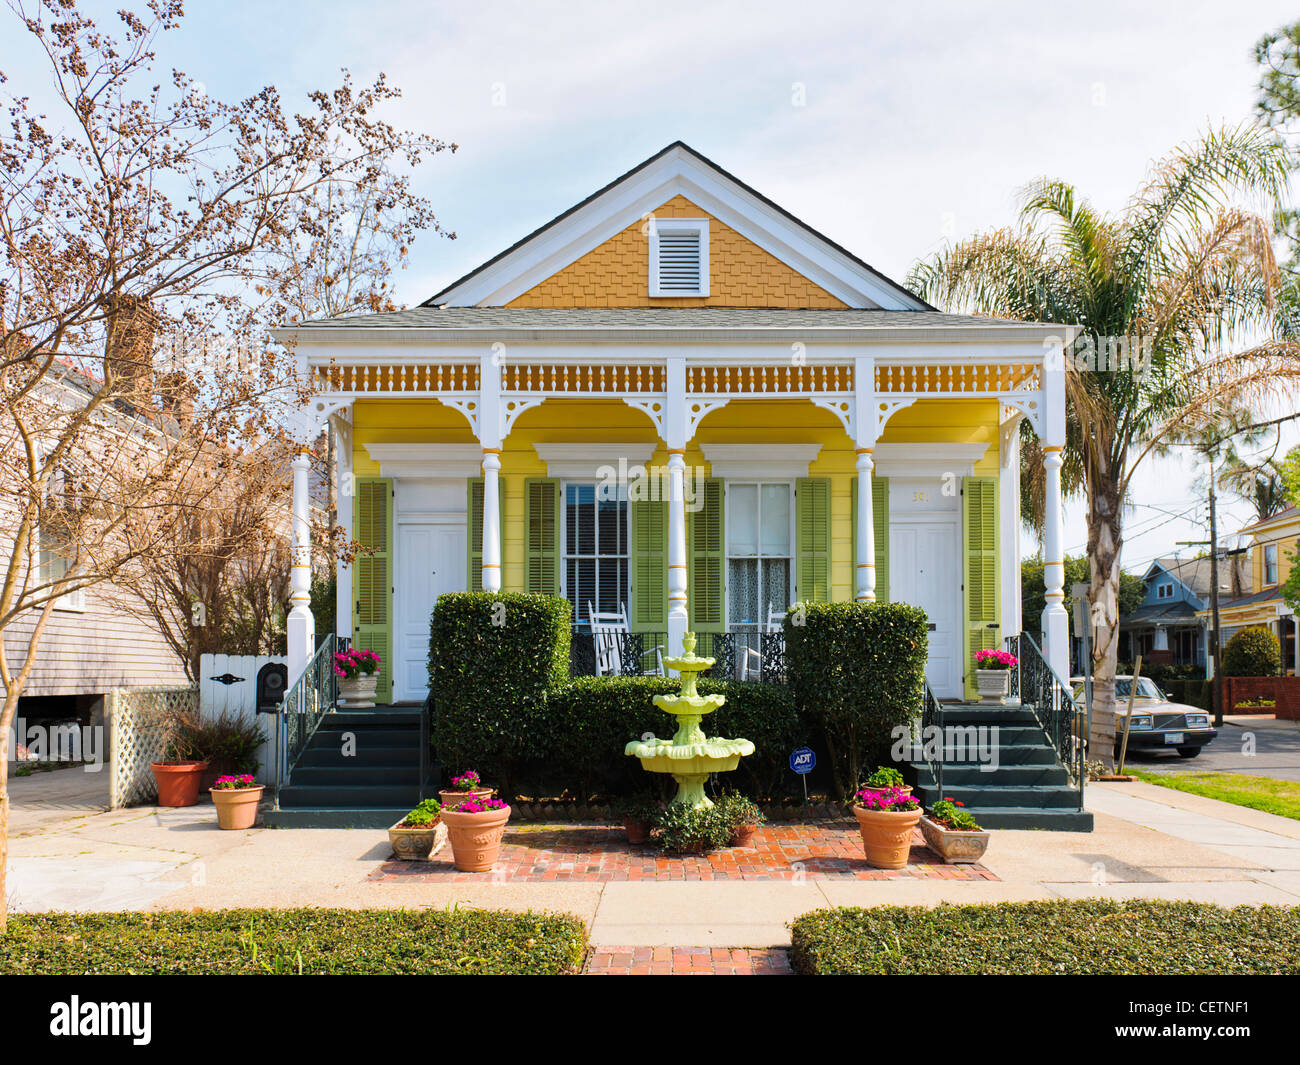 us mobile homes html with Stock Photo Shotgun House Algiers Point New Orleans 43569653 on Article 53fa39af A0ba 5e46 8ea3 98f3ec9f811e in addition Our Customers in addition Park Layout furthermore Beaches 35 additionally Stock Photo Shotgun House Algiers Point New Orleans 43569653.